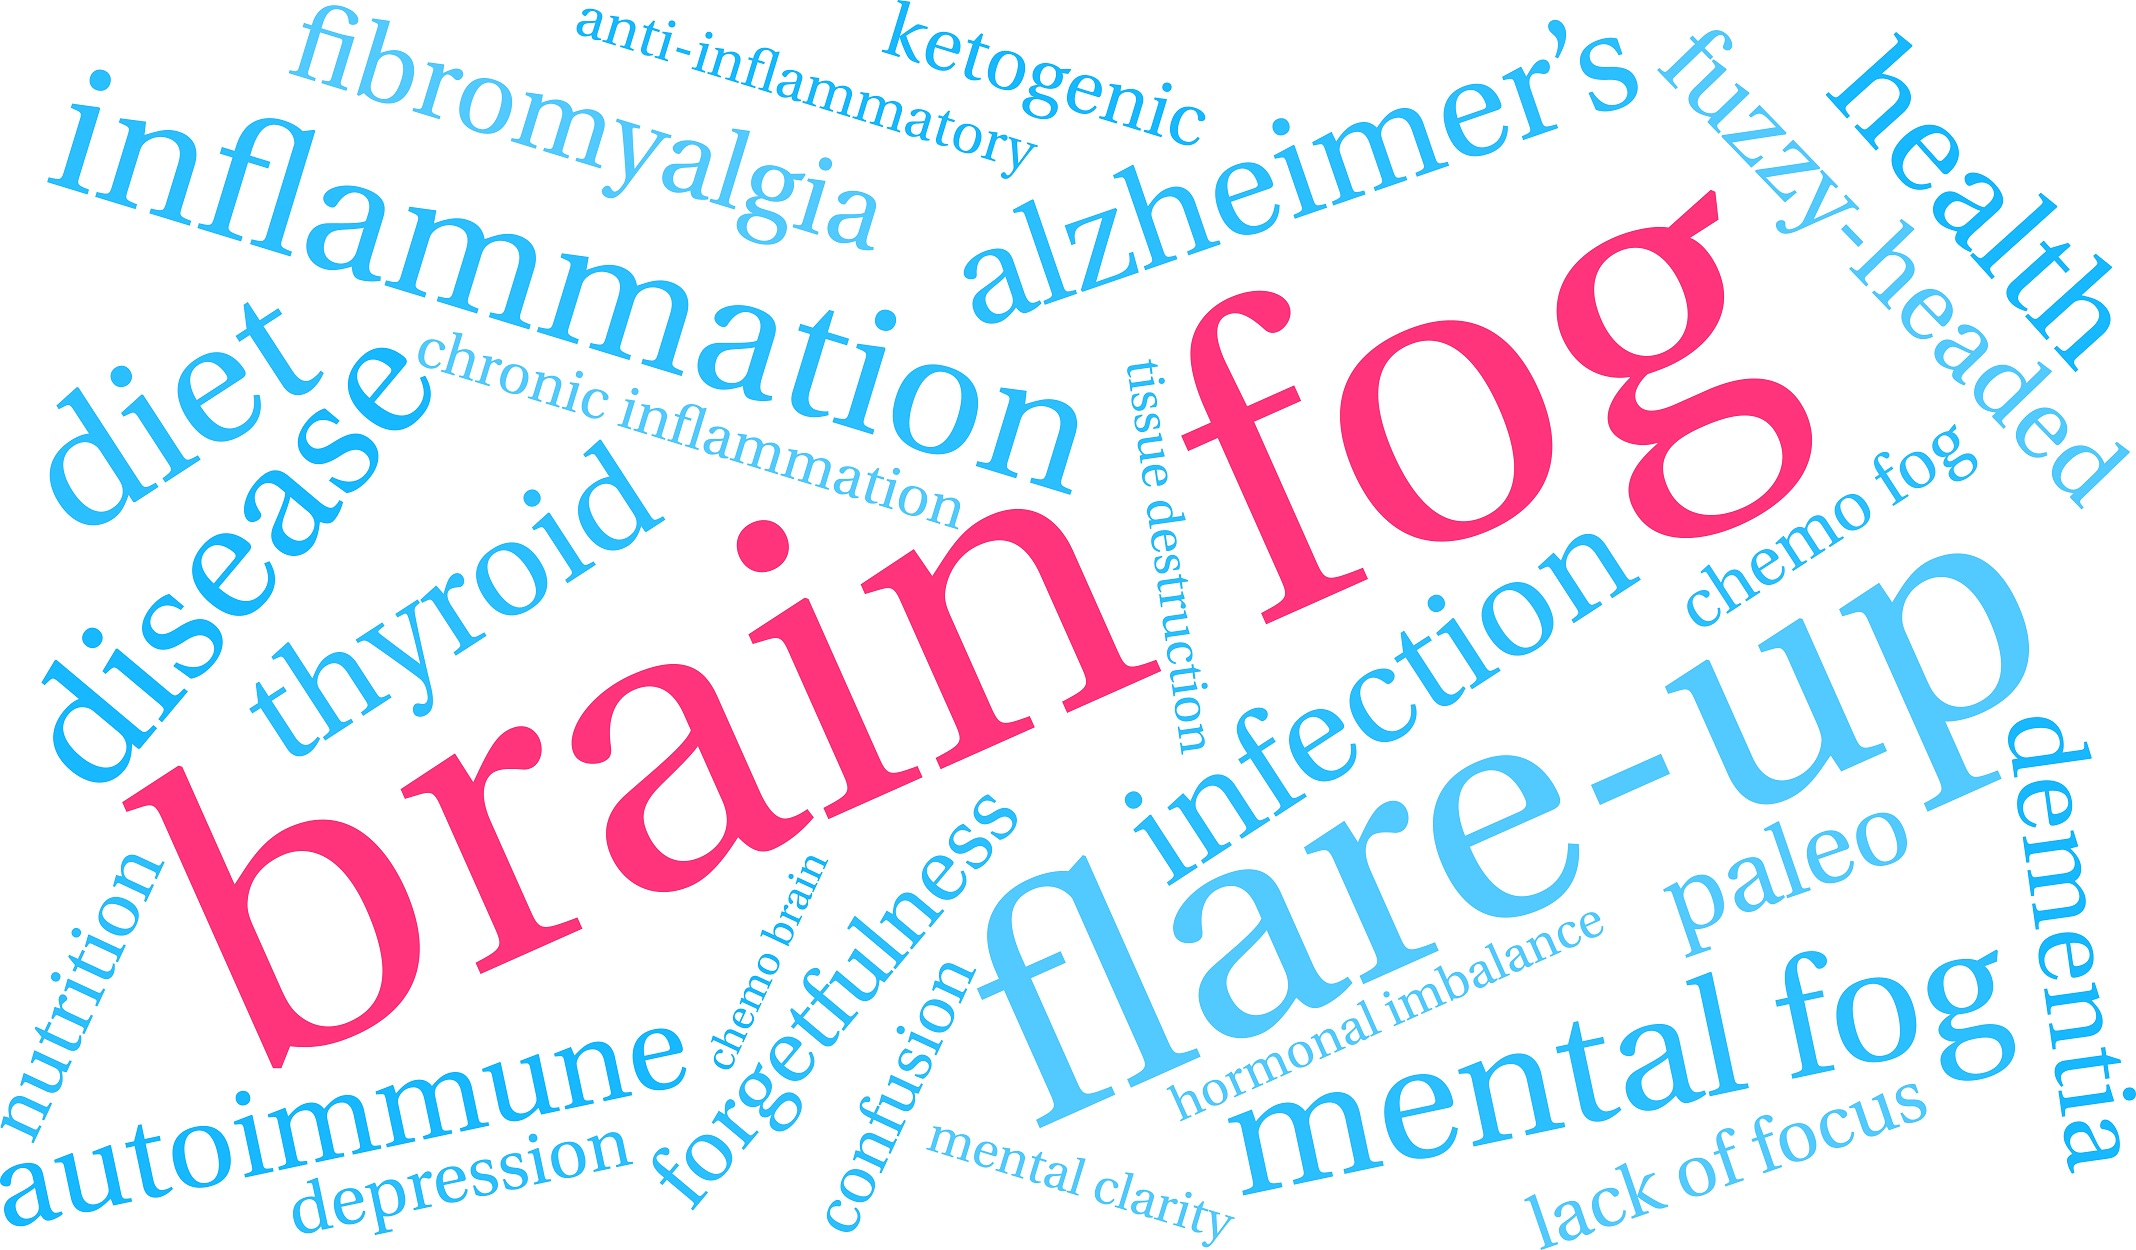 Brain fog can be caused mainly by thyroid illnesses and mental issues